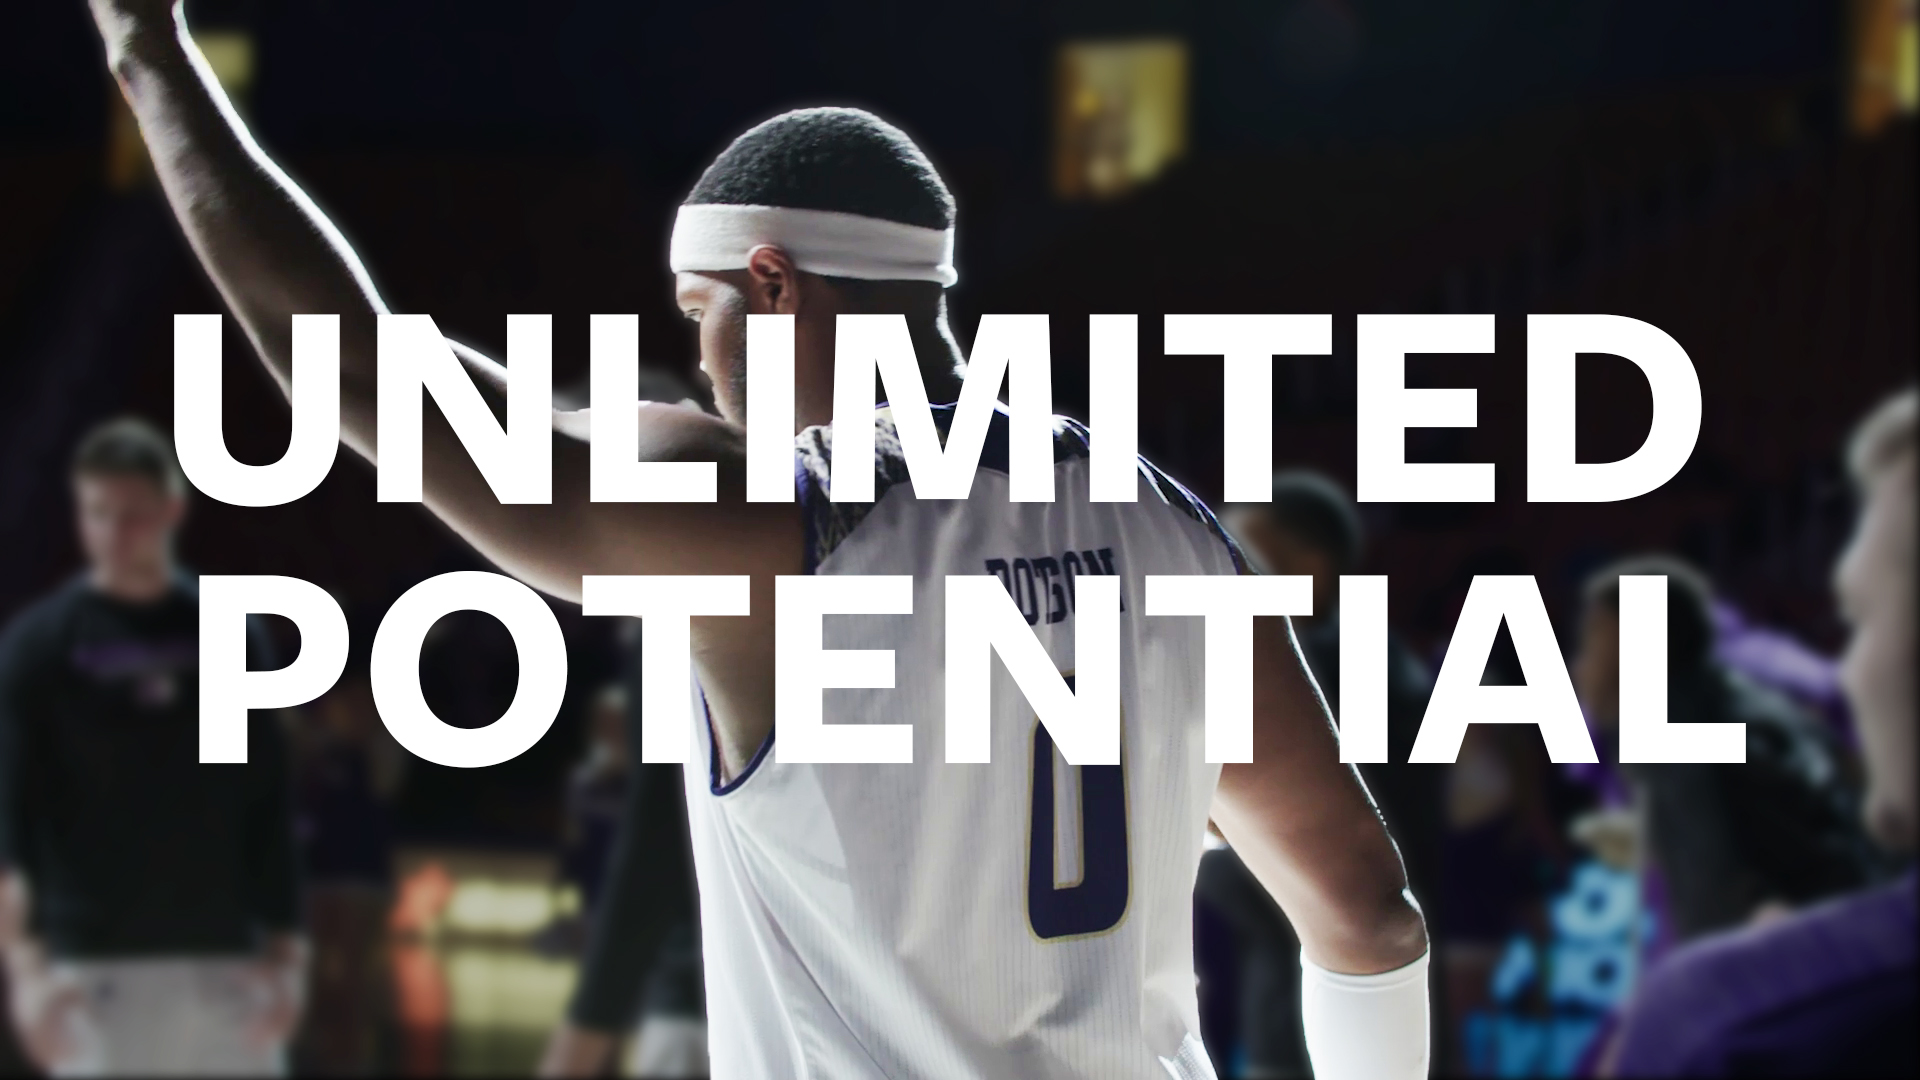 Unlimited Potential: Carlos Dotson